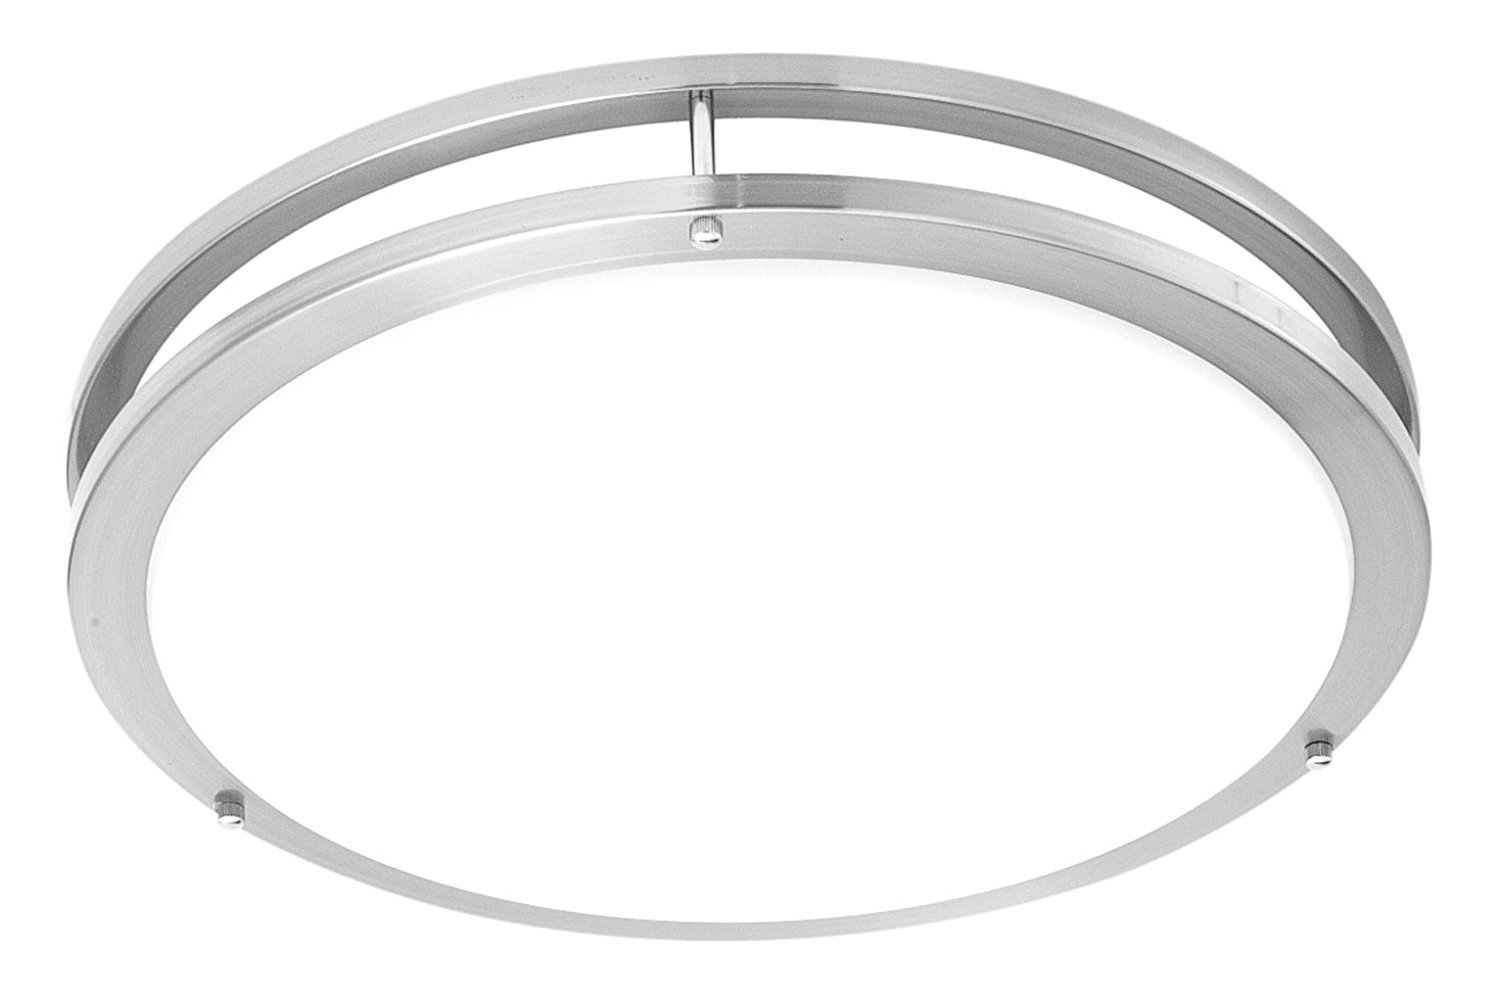 Philips Lighting Sl7050-78 Energy Star Certified Fixture With White Acrylic Lens, Brushed Nickel by Thomas Lighting (Image #1)